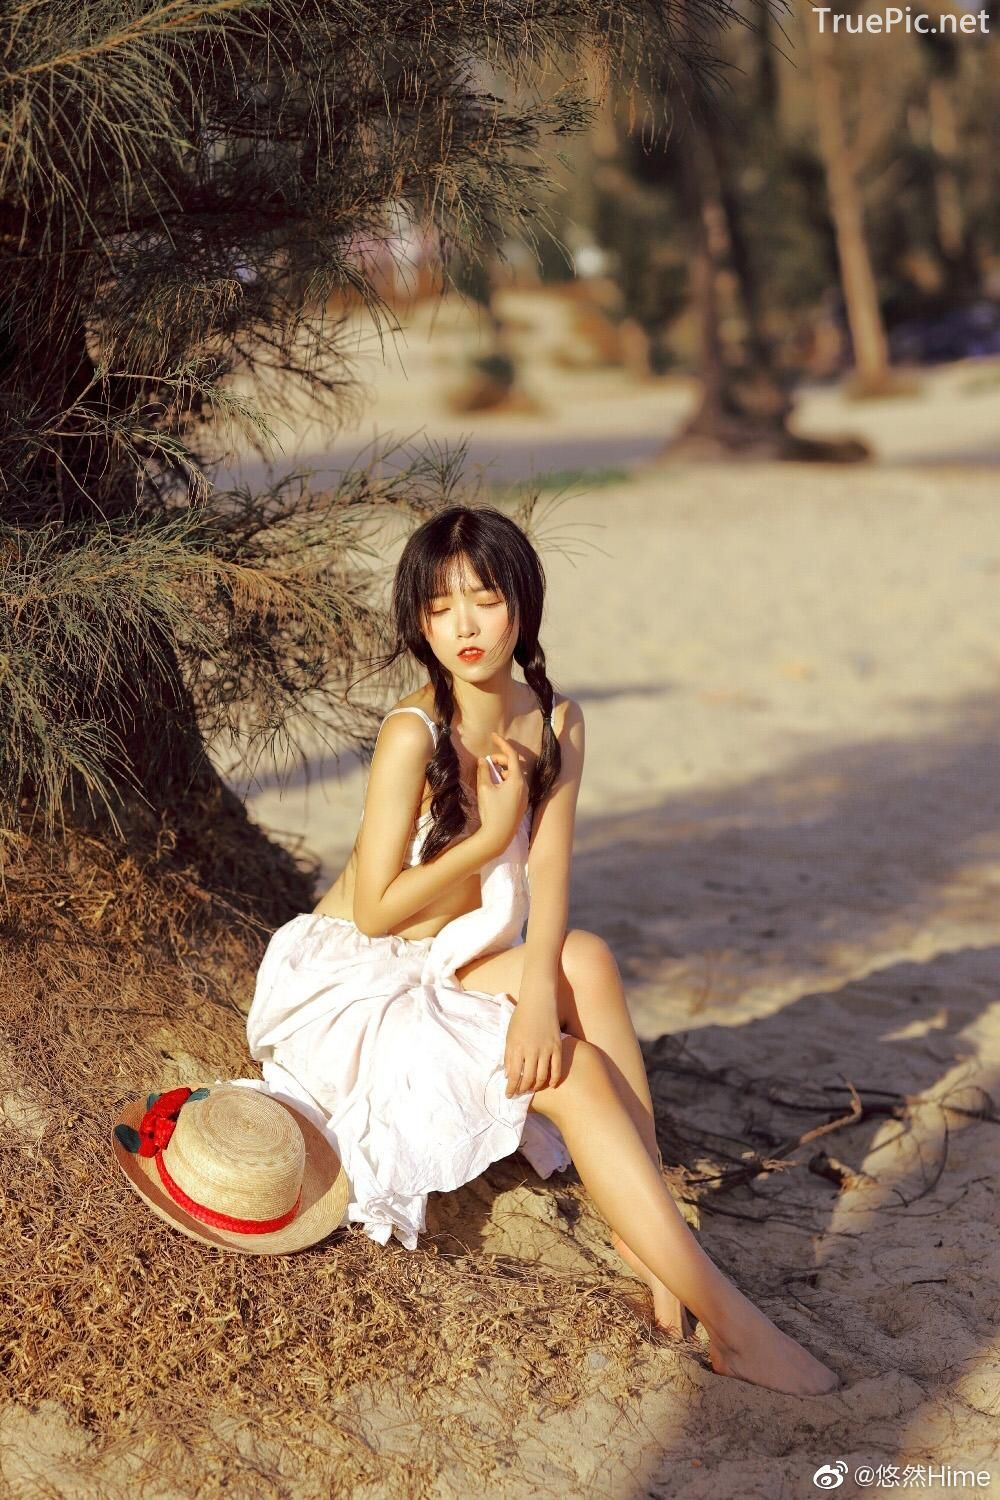 Chinese bautiful angel - Stay with you on a beautiful beach - TruePic.net - Picture 5